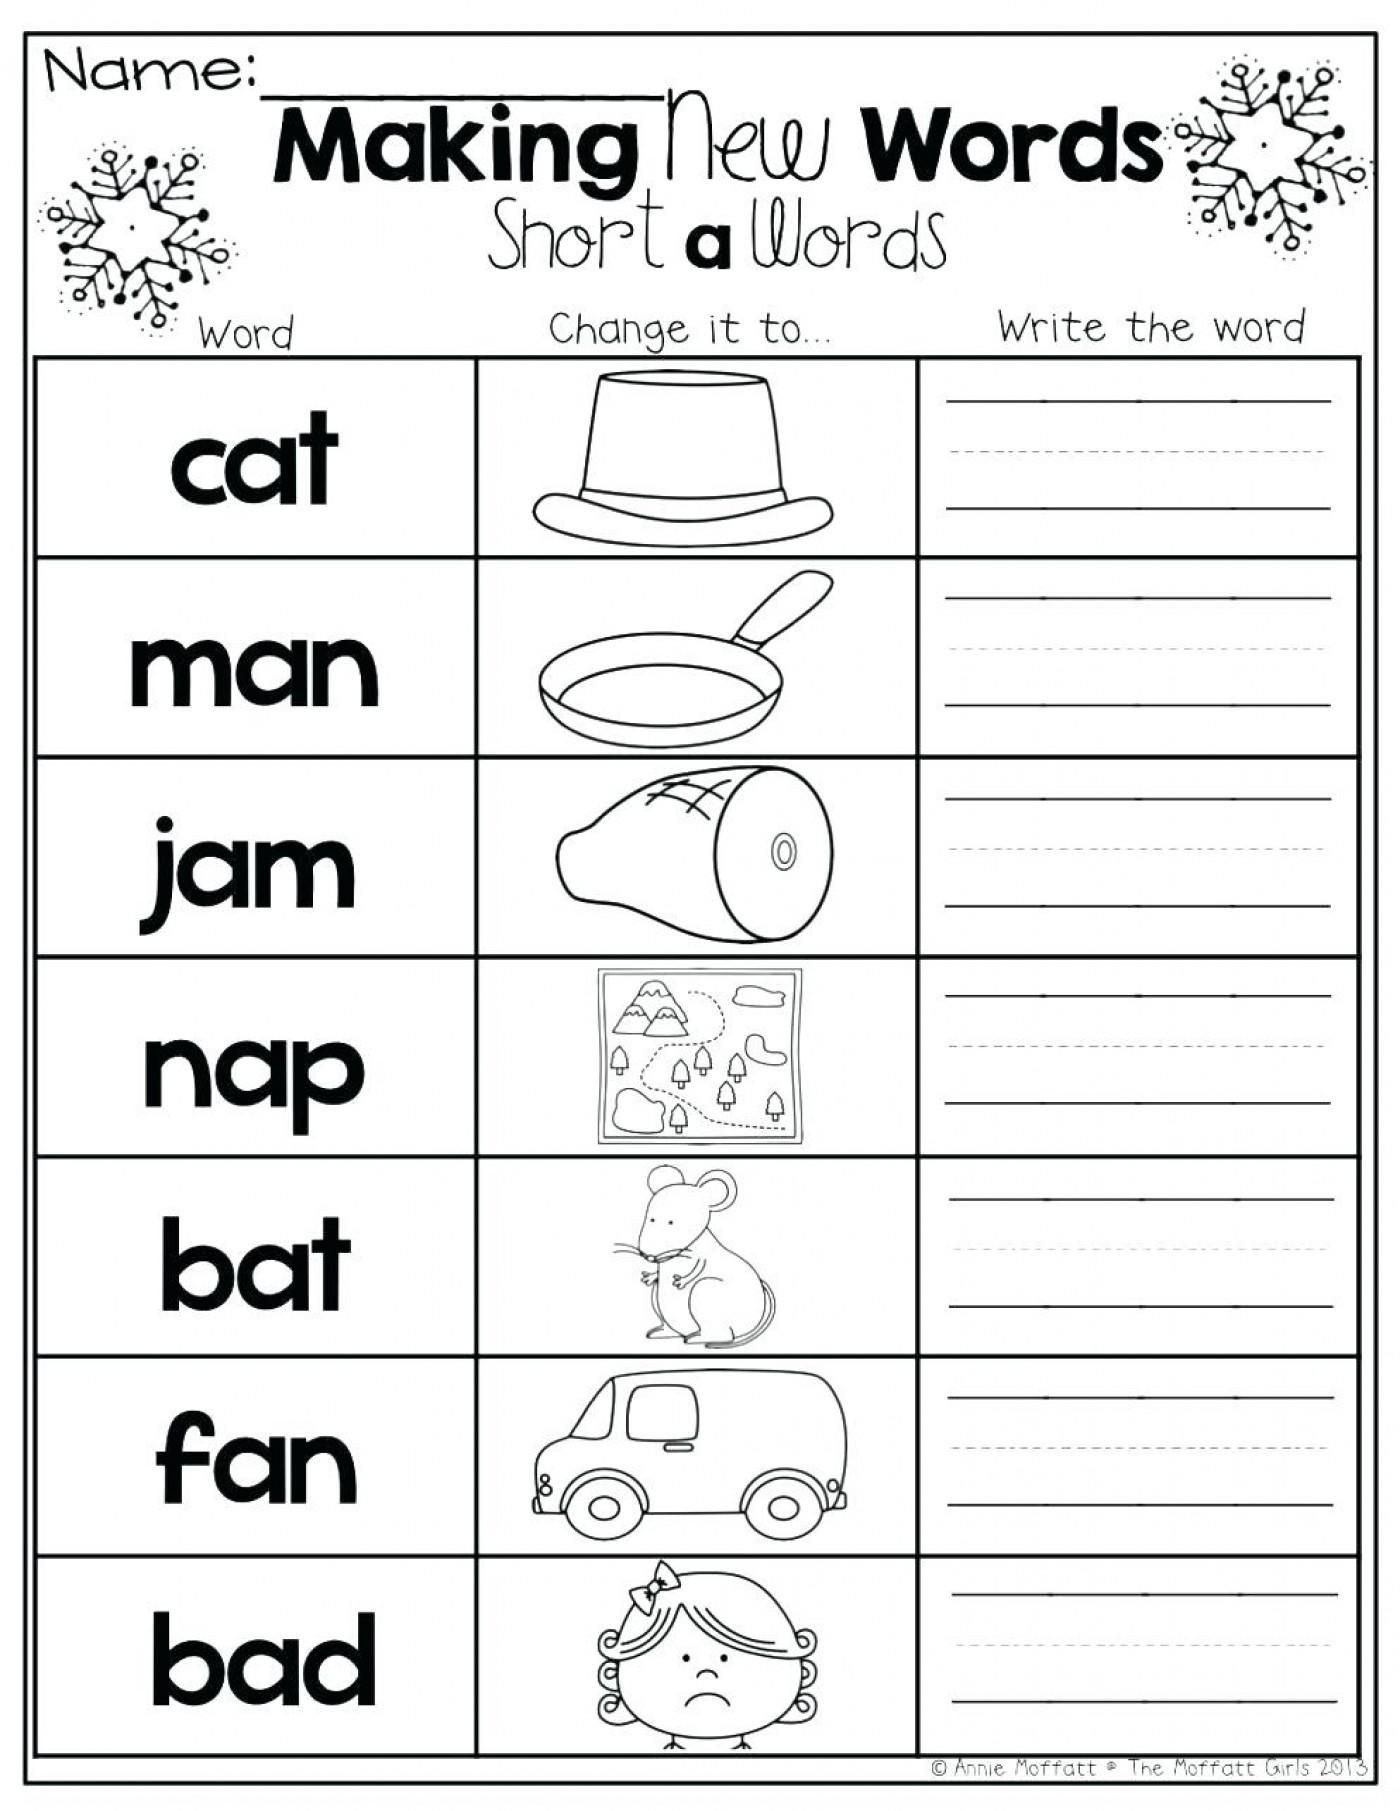 Ccvc Words Worksheets Kindergarten 10 Printable Digraph Worksheets for Kindergarten In 2020